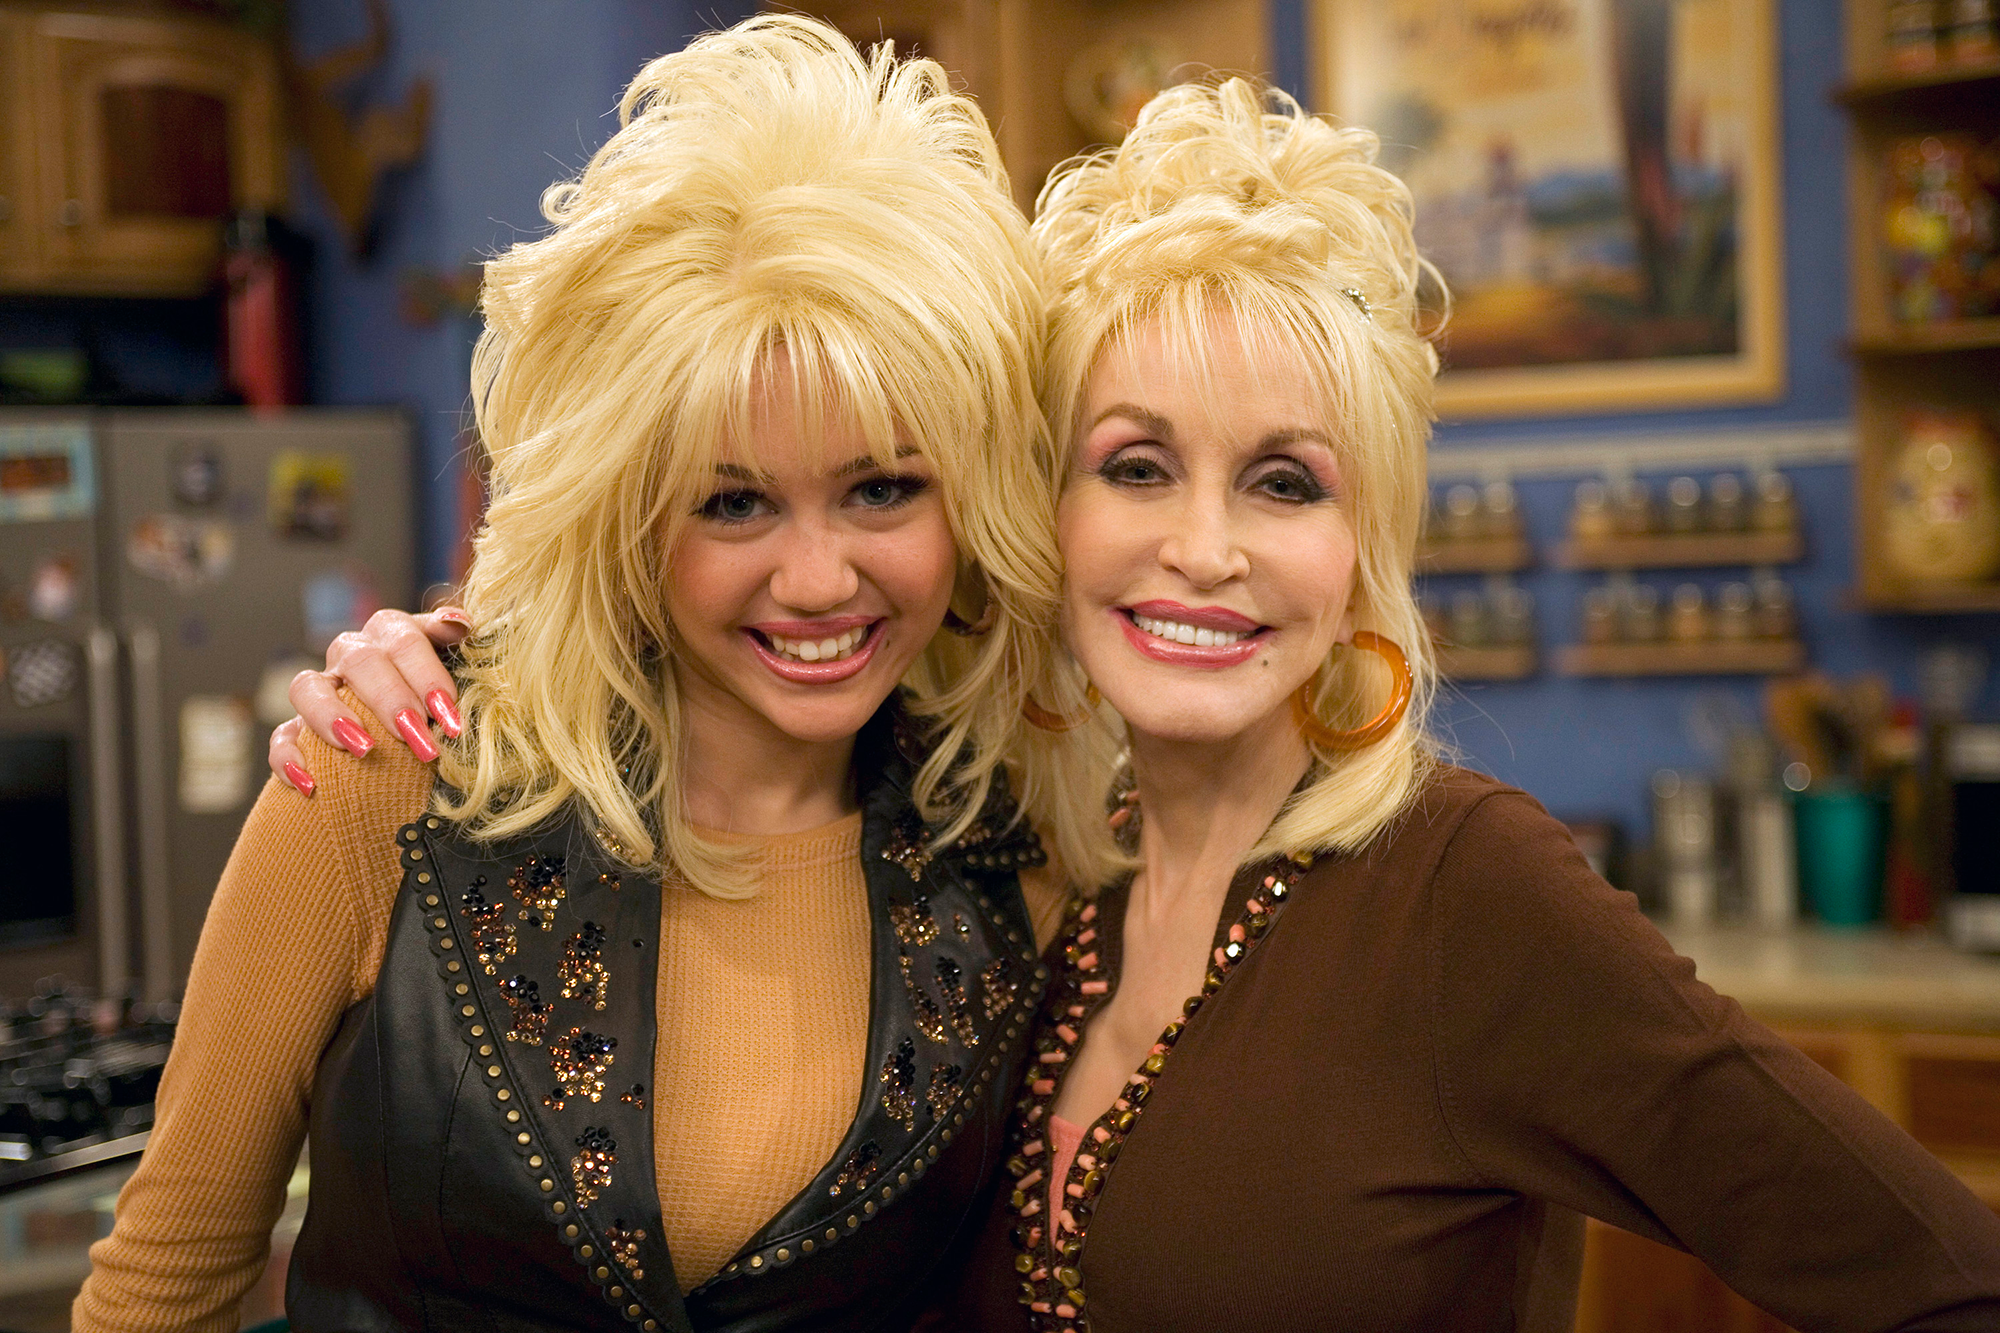 Miley Cyrus And Her Godmother Dolly Partons 8 Cutest Moments